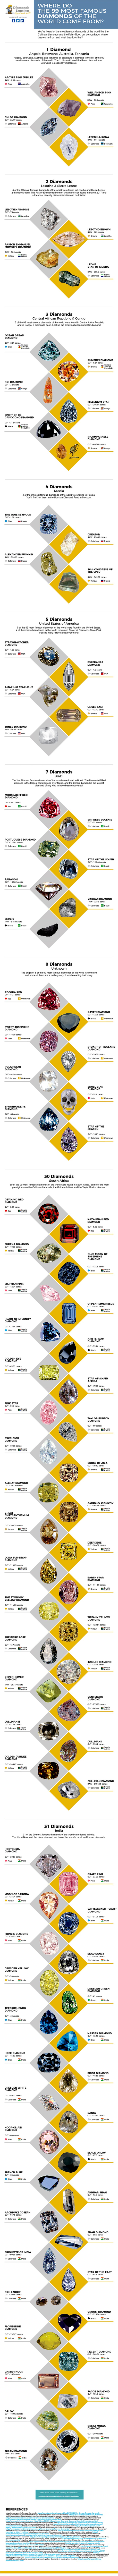 Diamonds-infographic.jpeg